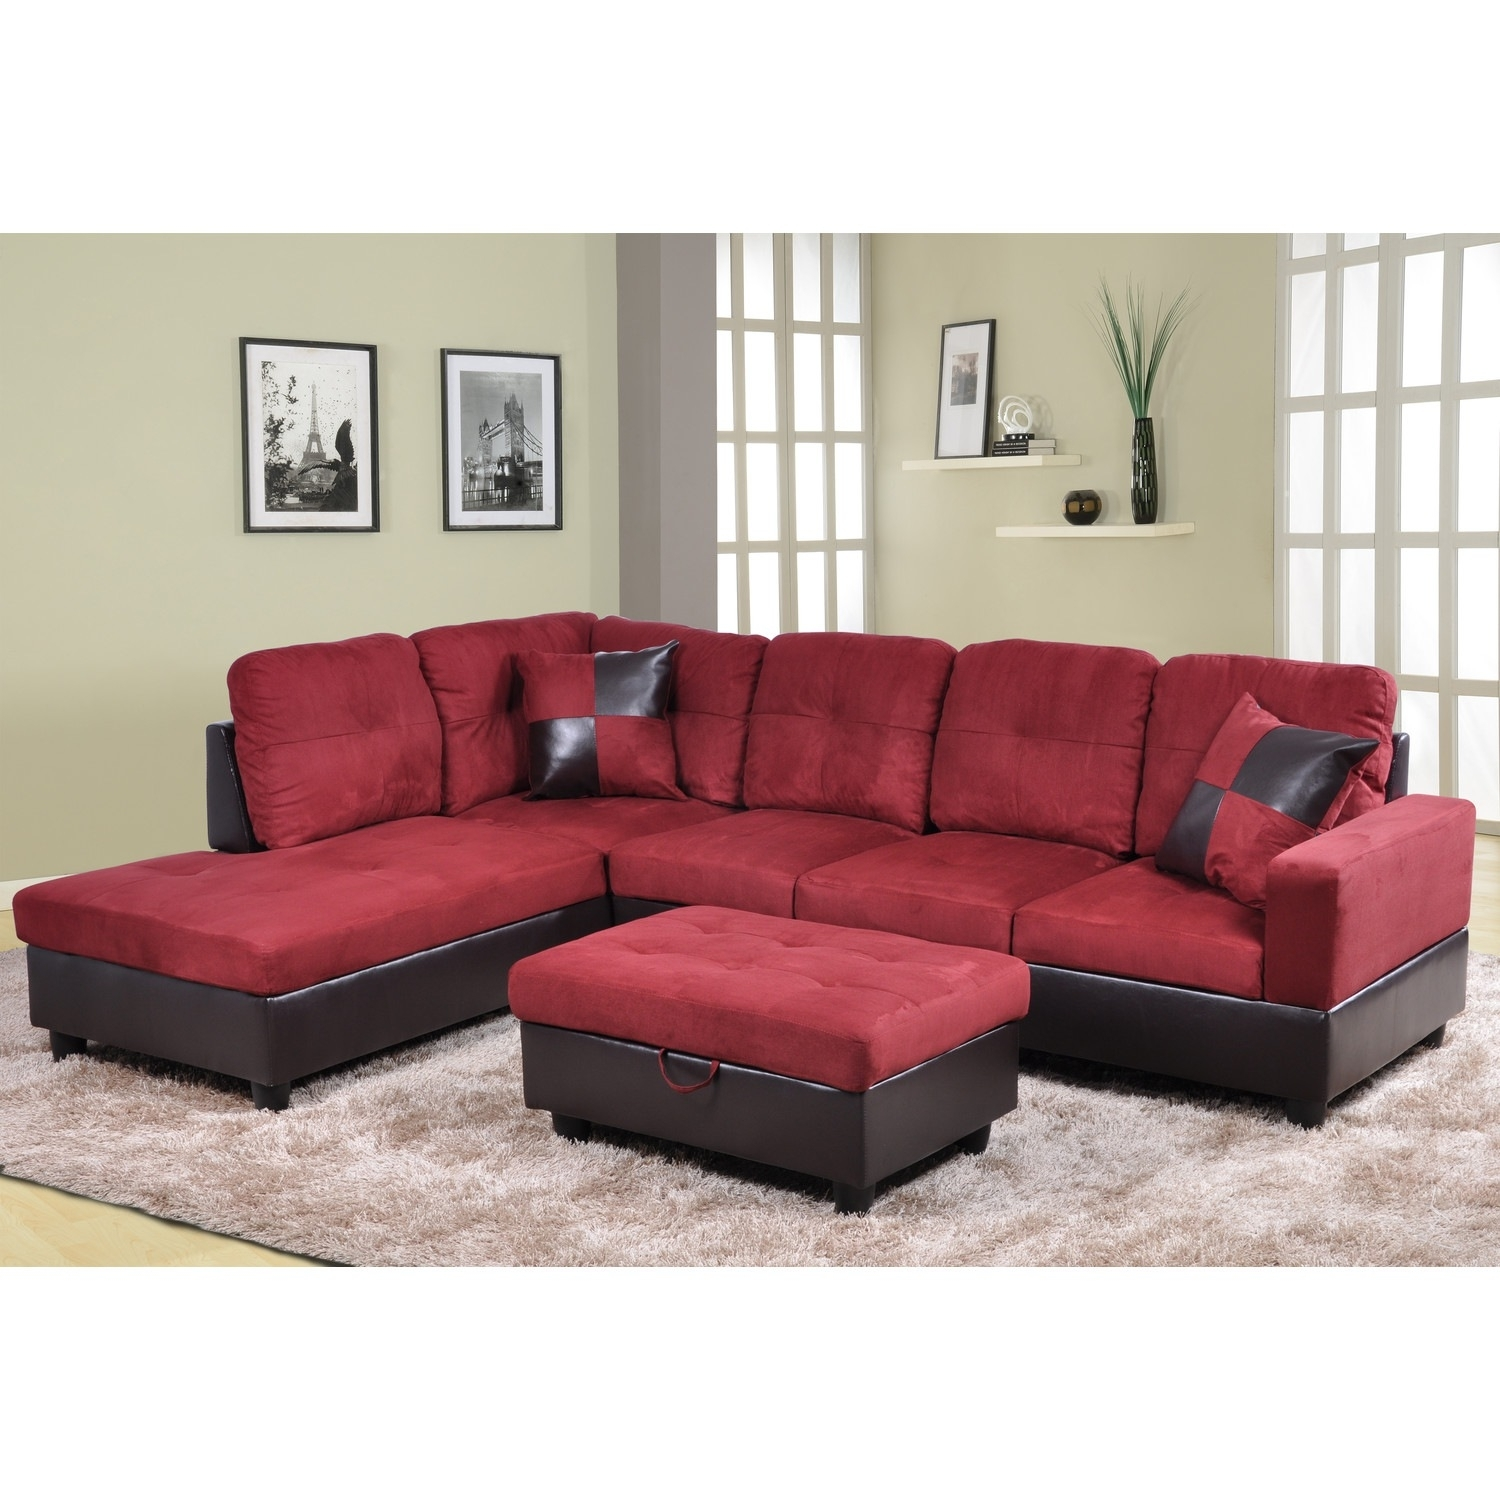 Cheap Sectional Sofas For Sale Inspirational Furniture Sears Sofa Inside Sears Sectional Sofas (View 8 of 10)